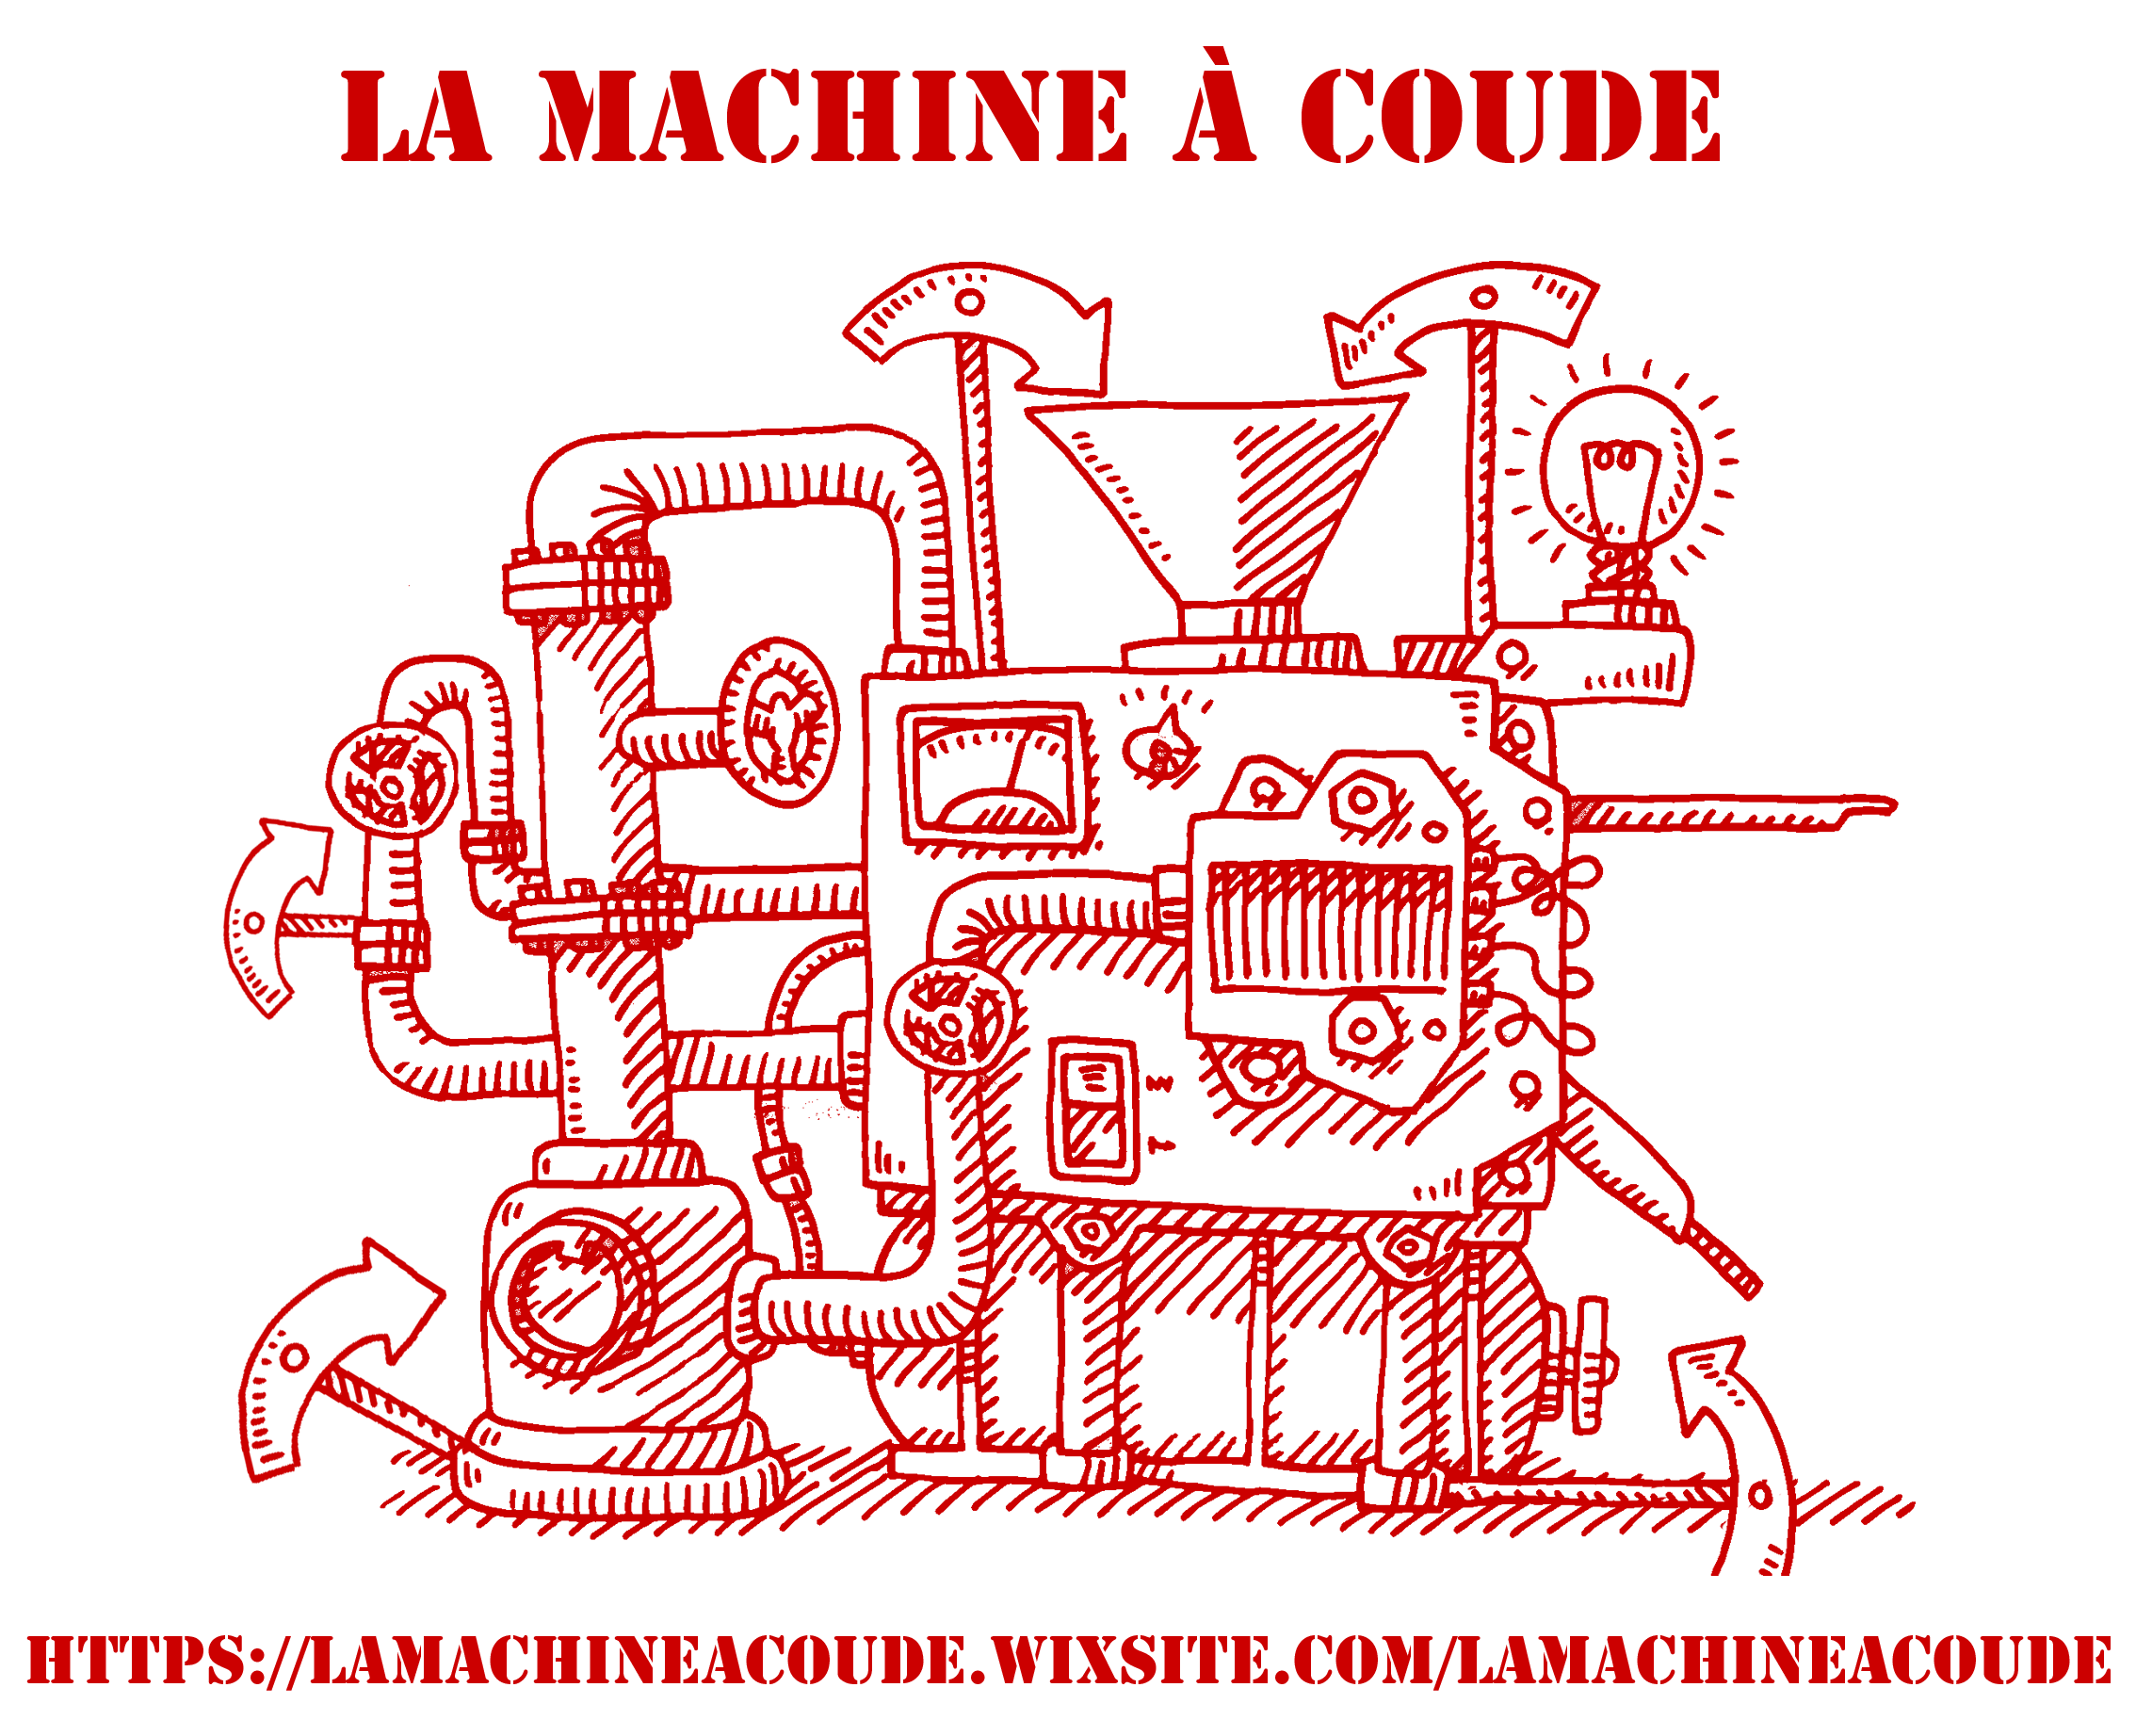 La Machine à coude